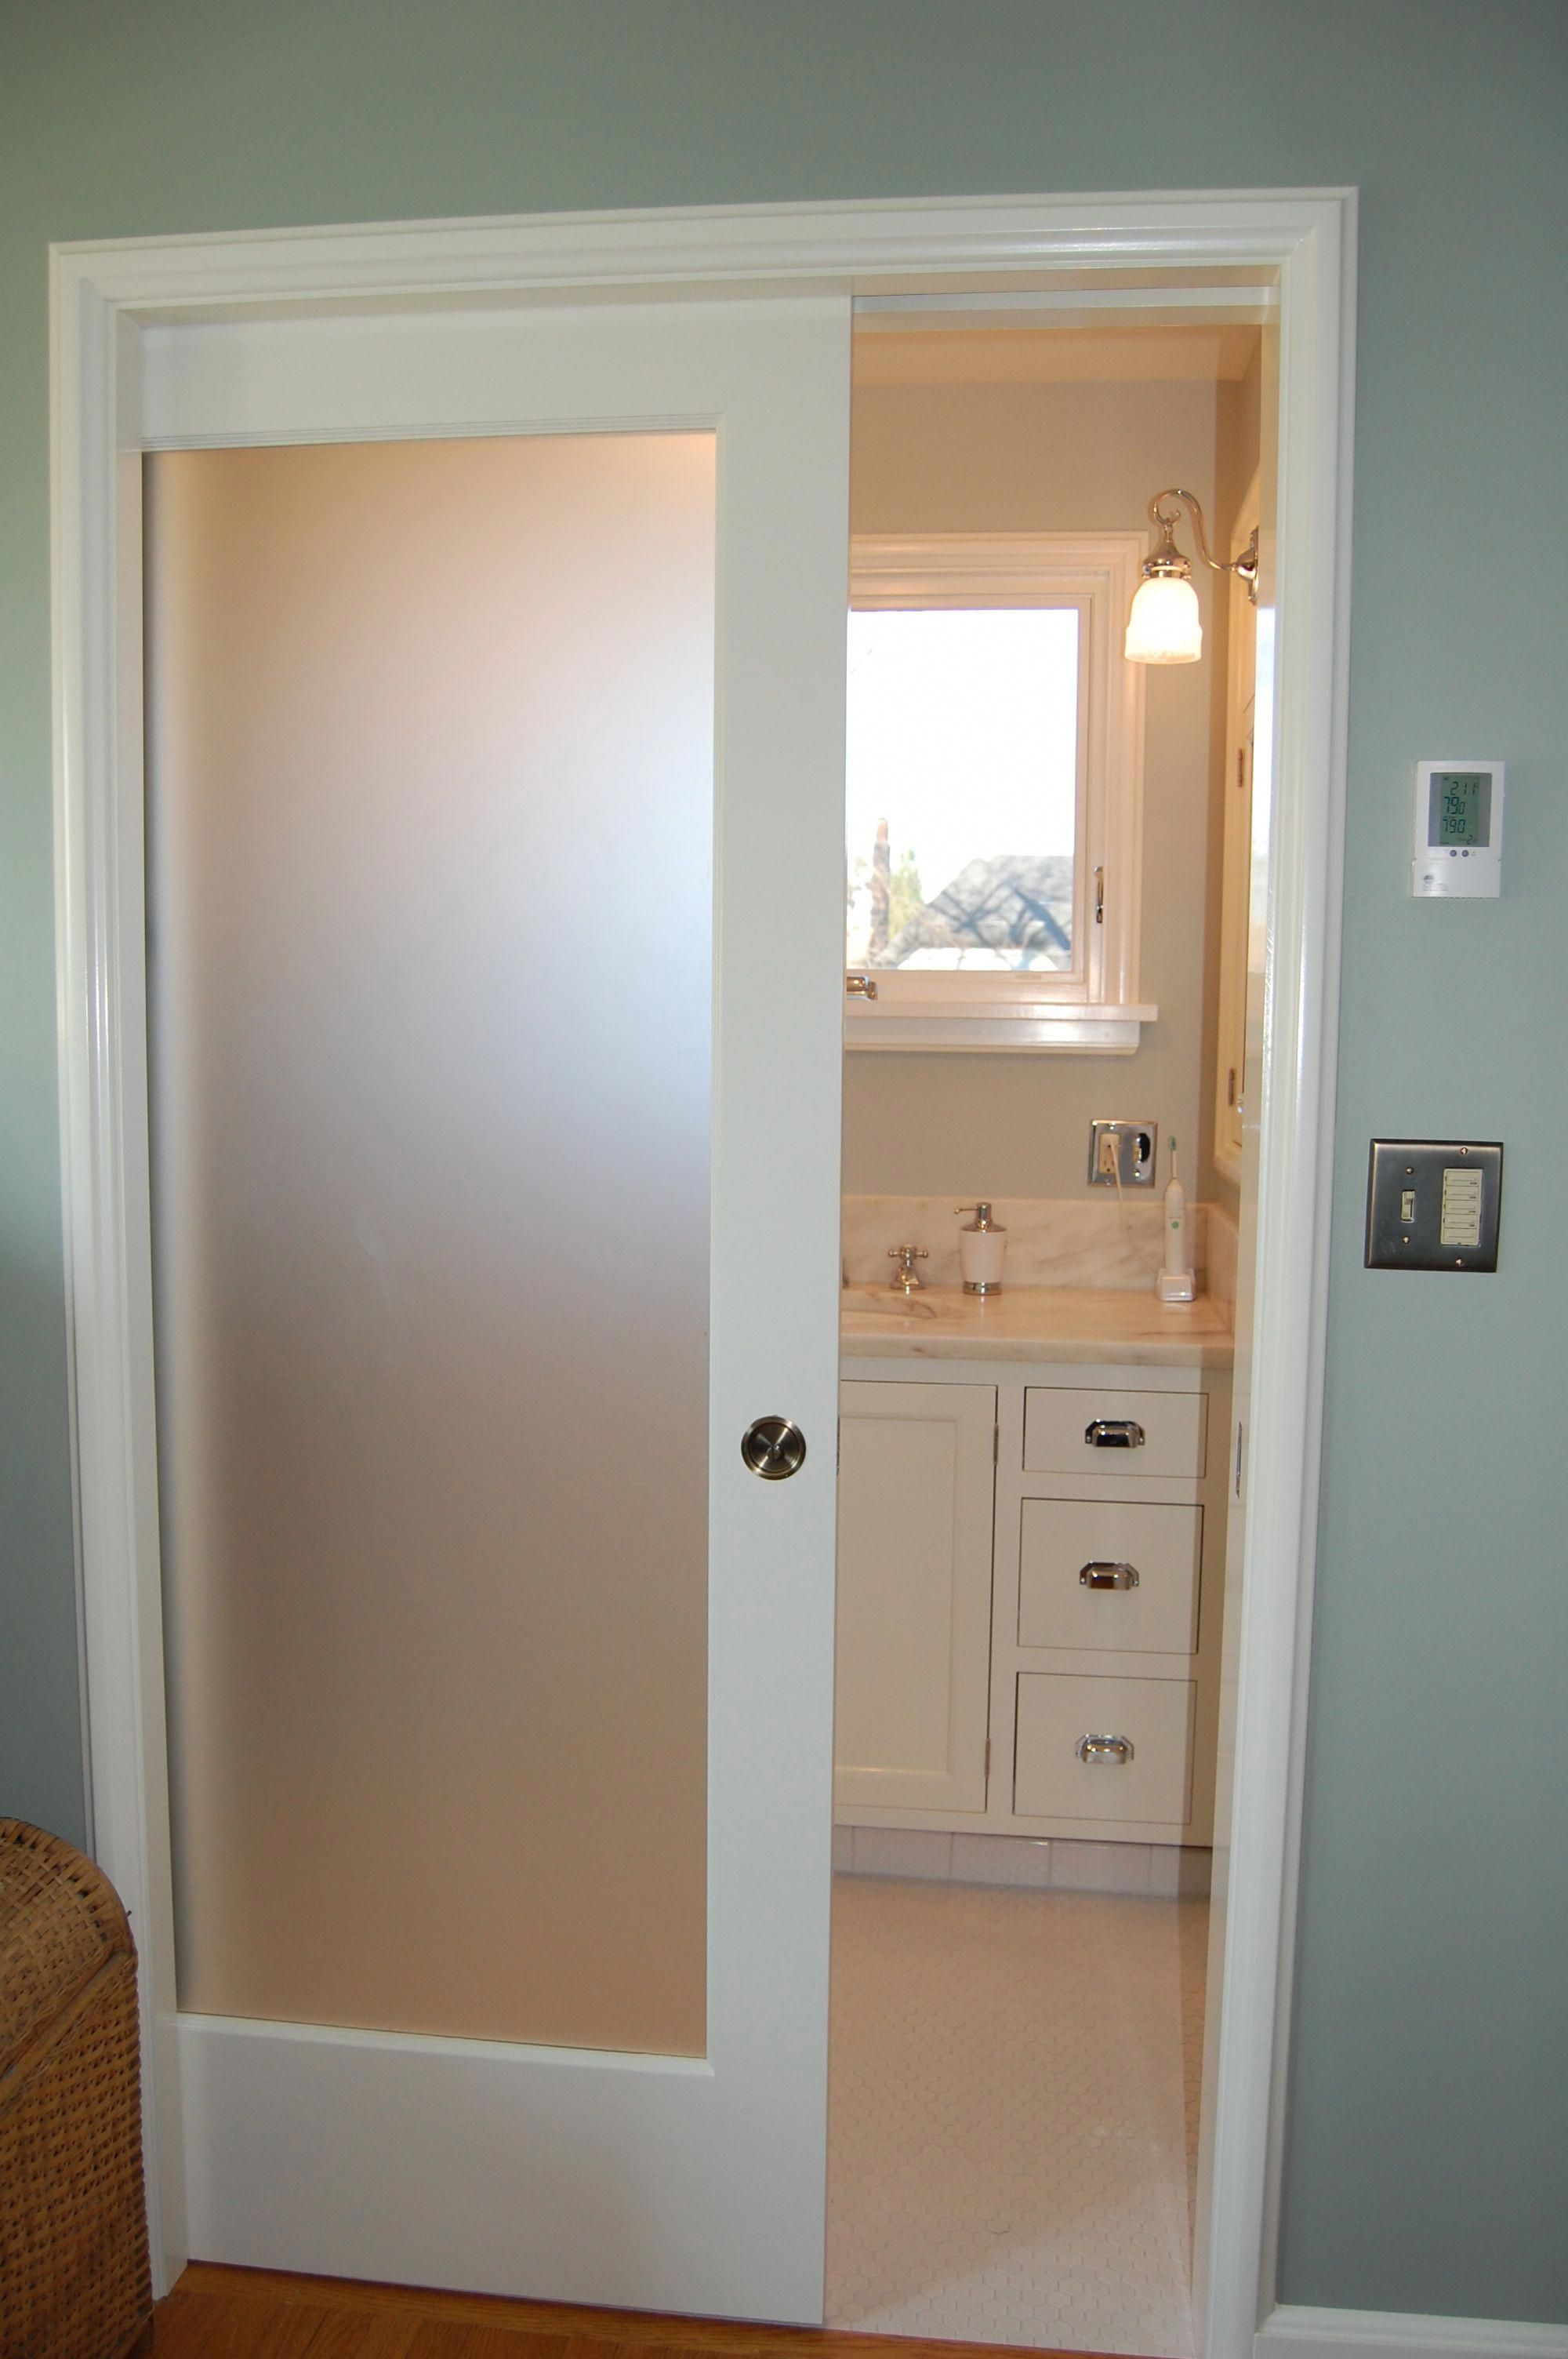 Pocket door with frosted glass this reminds me of my bathroom when i lived in my apartments